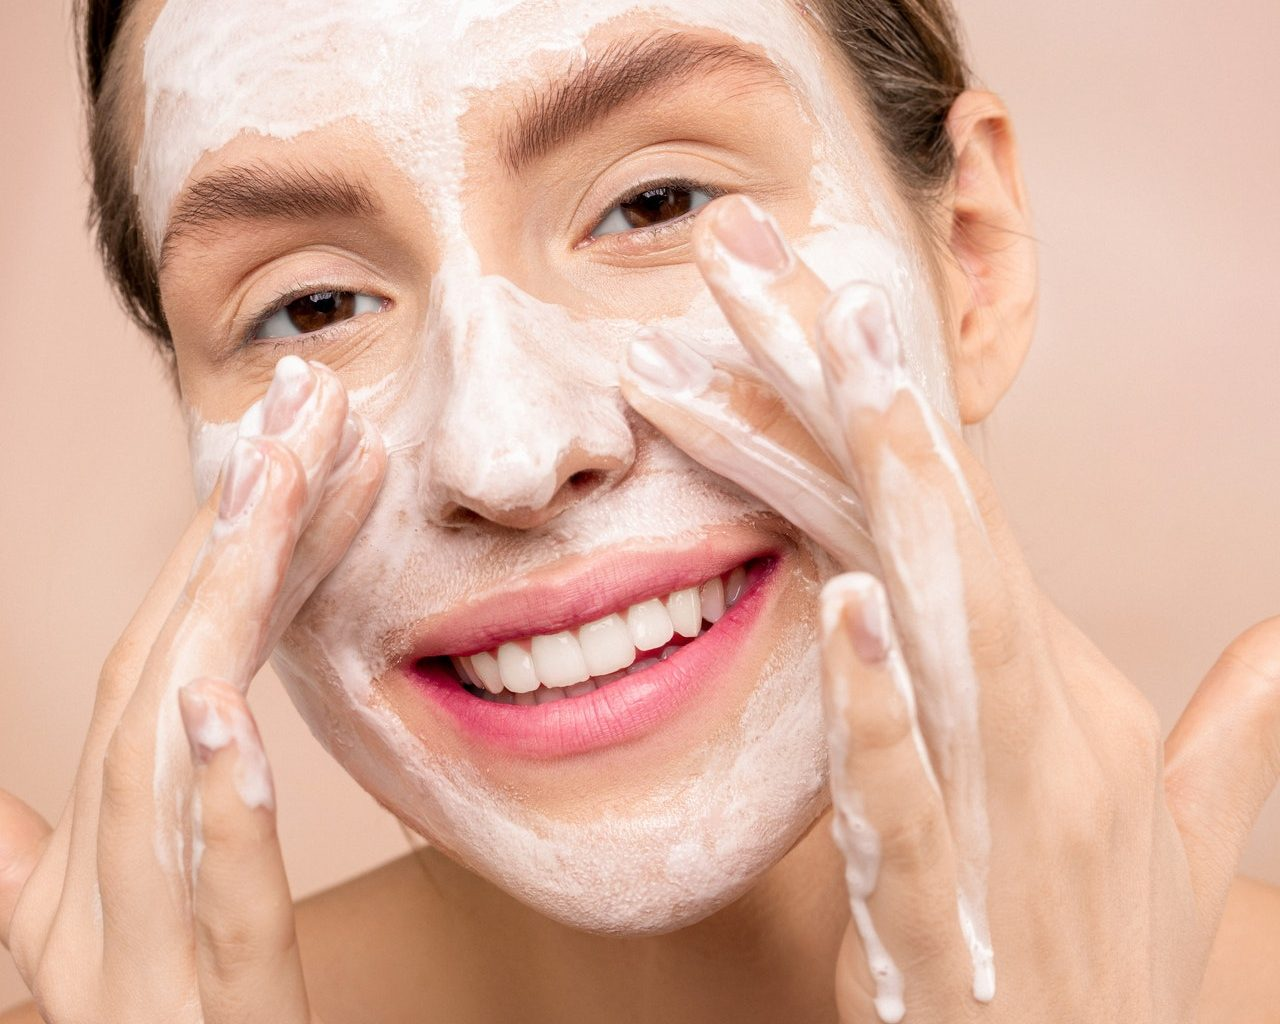 woman washing her face with soap 3762455